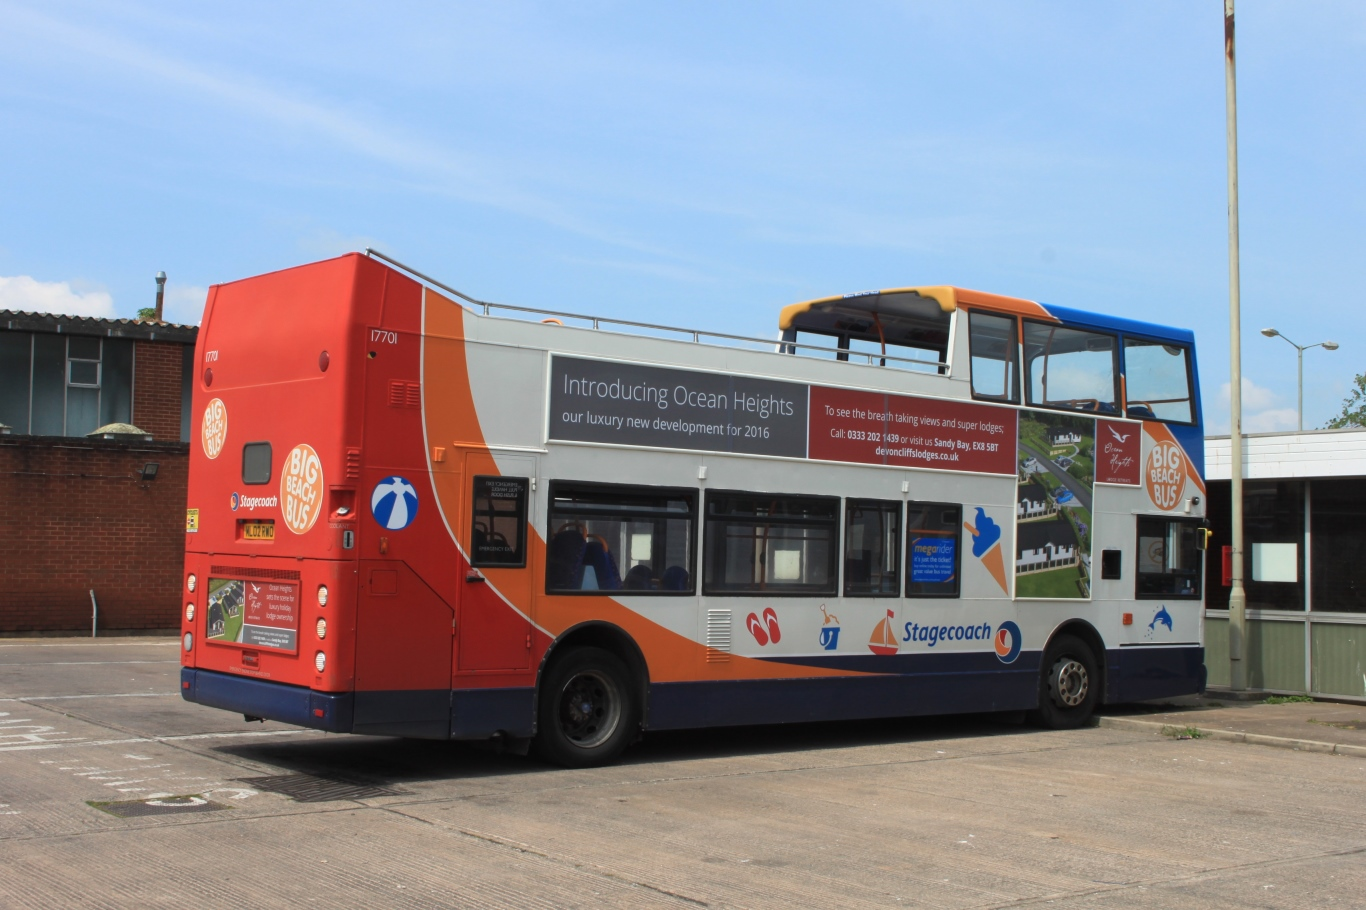 File:Exmouth Bus Station - Stagecoach 17701 (ML02RWO) rear.JPG